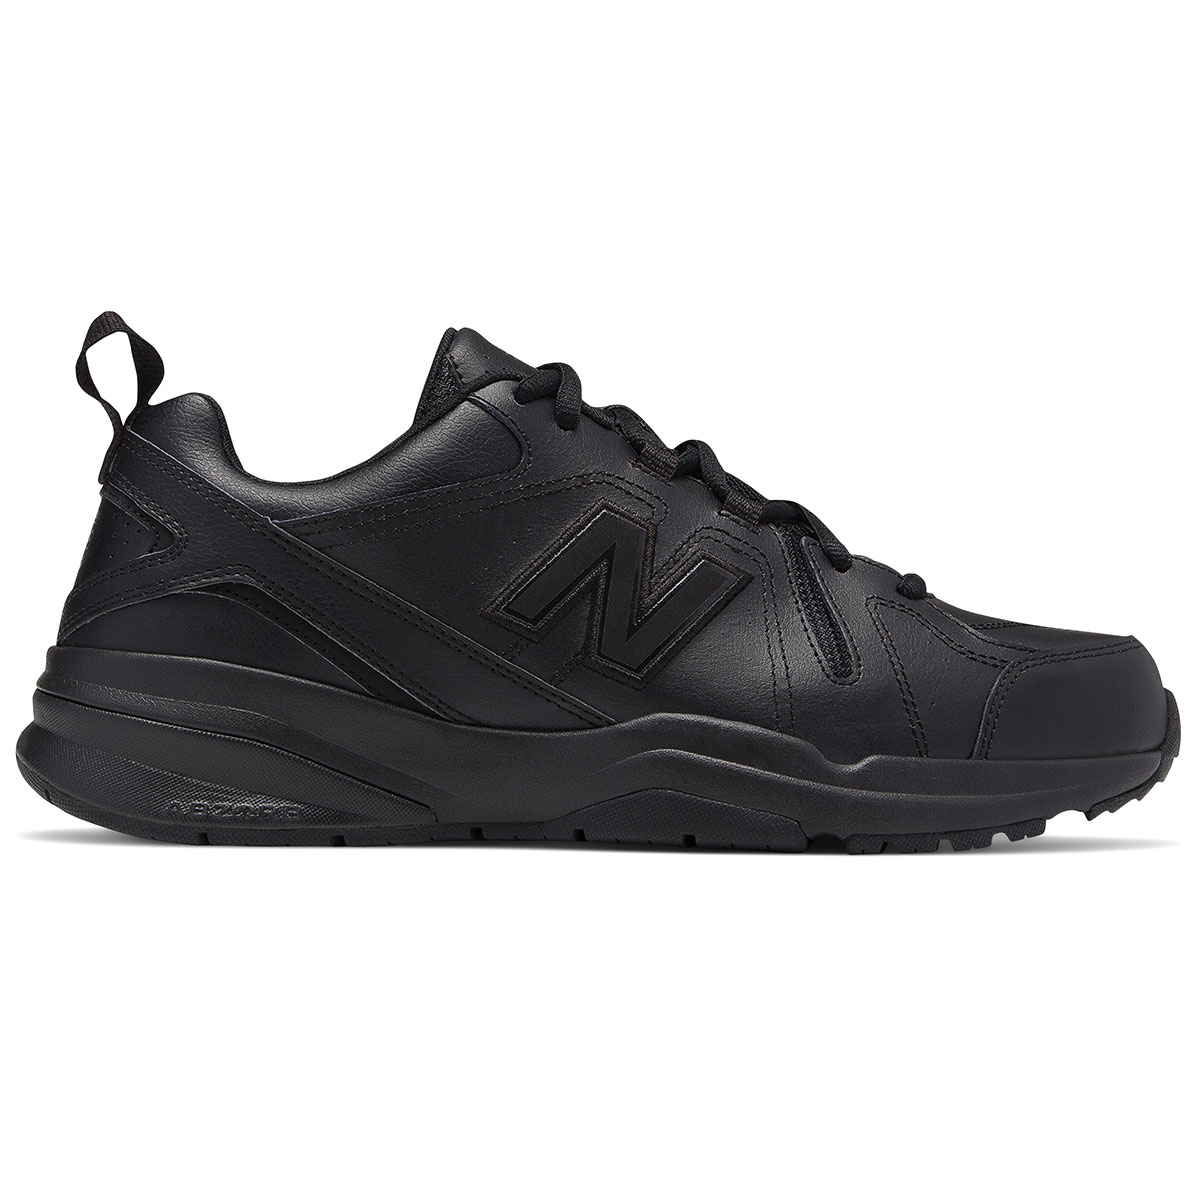 New Balance Men's 608V5 Training Shoes, Extra Wide - Black, 10.5